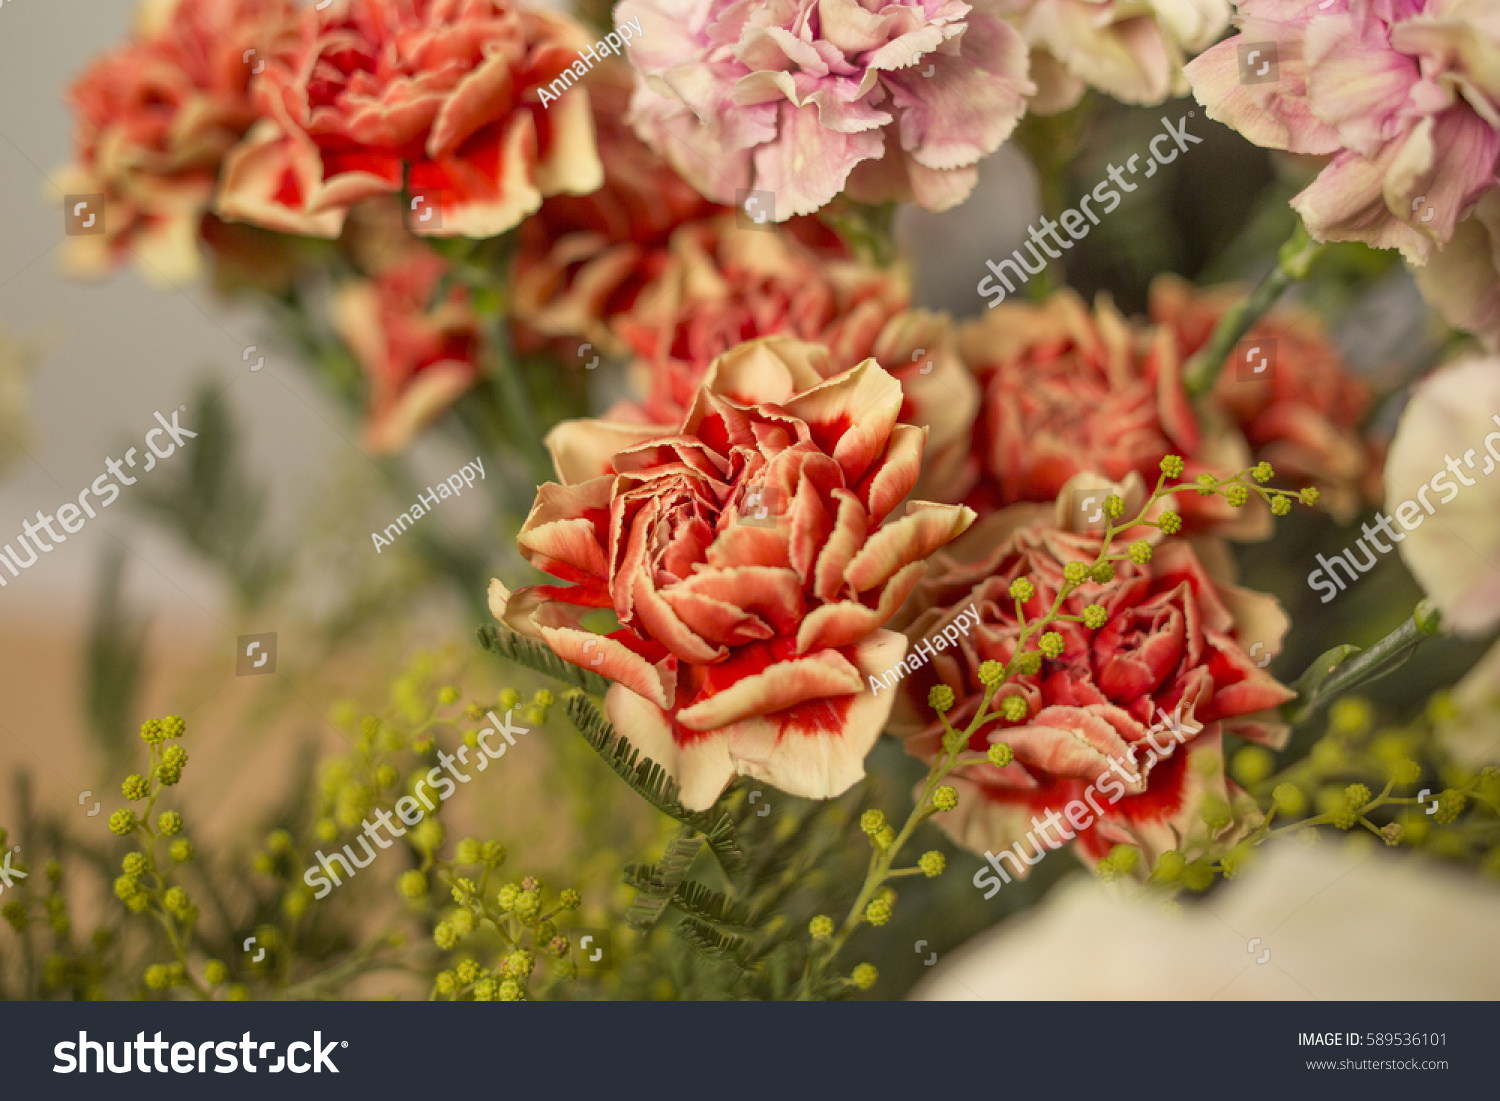 Bouquet carnations different color many beautiful stock for Different color roses bouquet